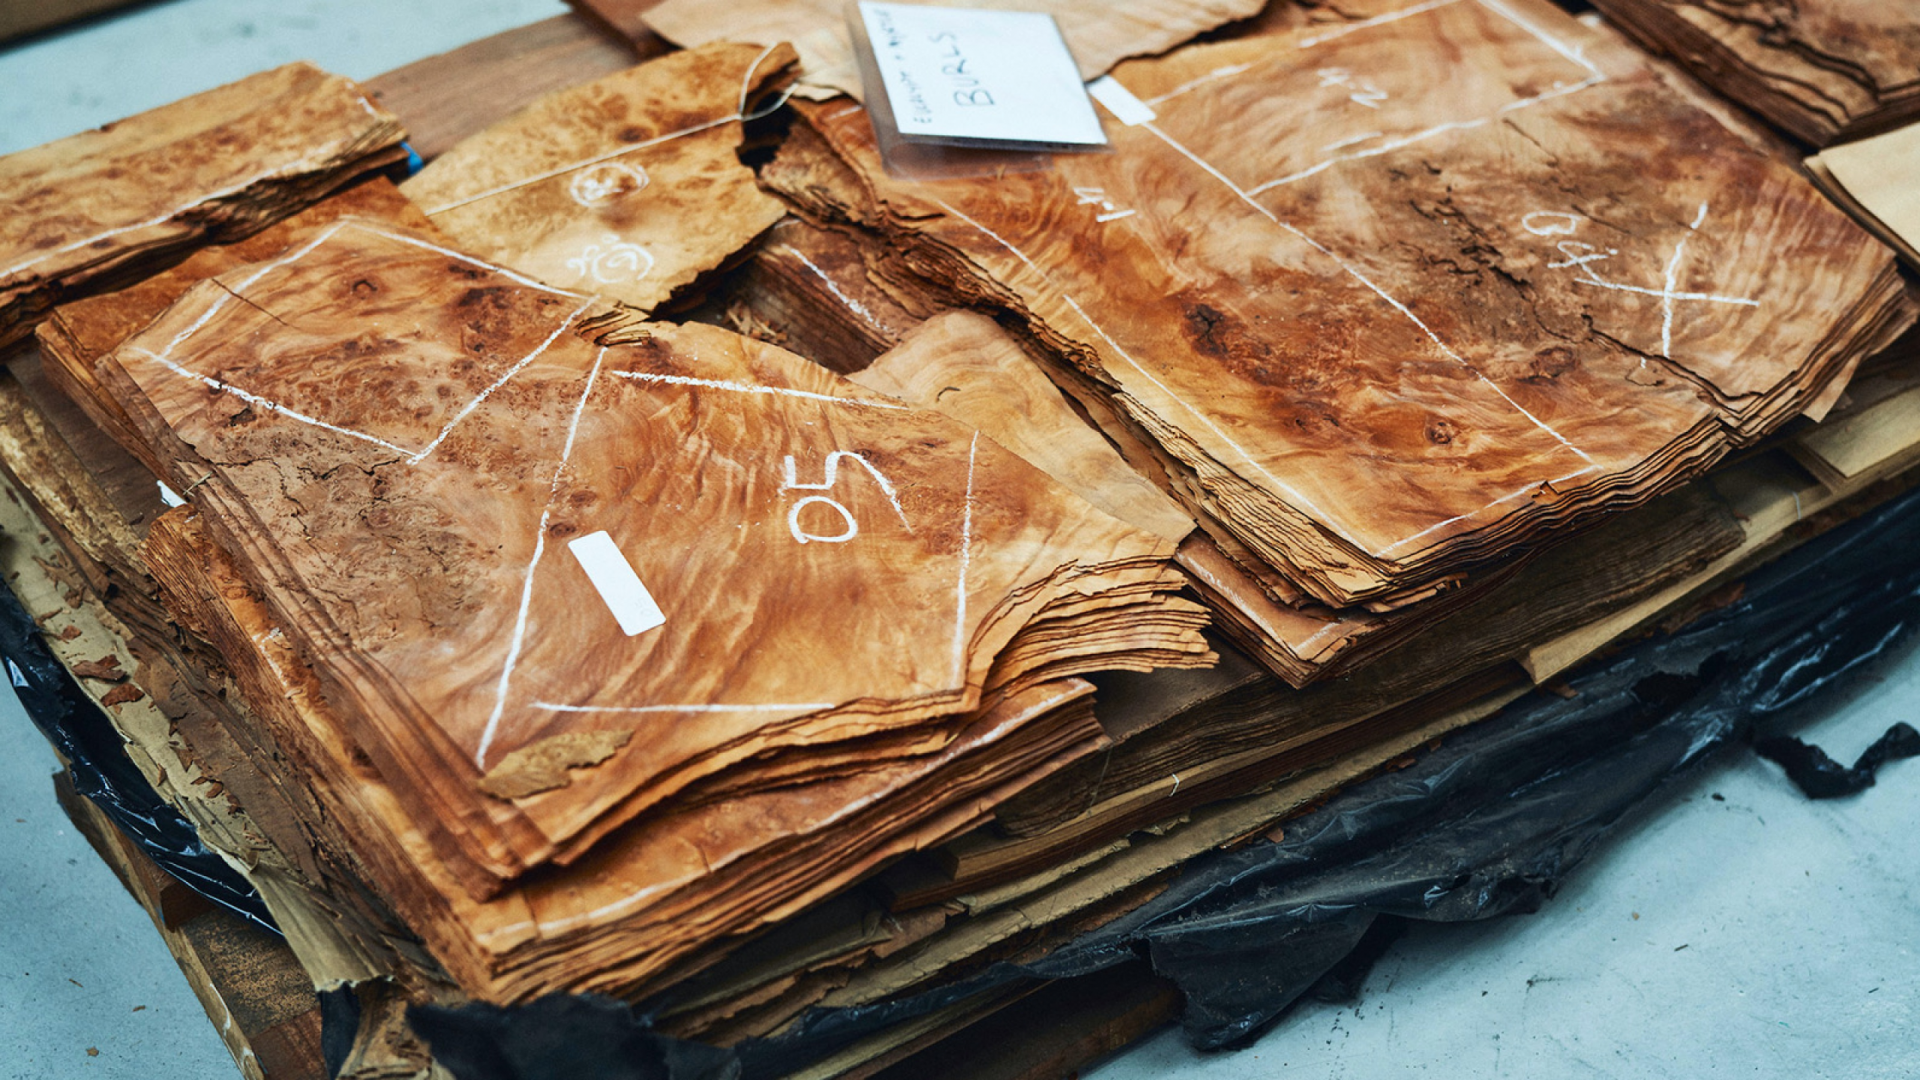 The heritage timber veneer archive of Elton Group